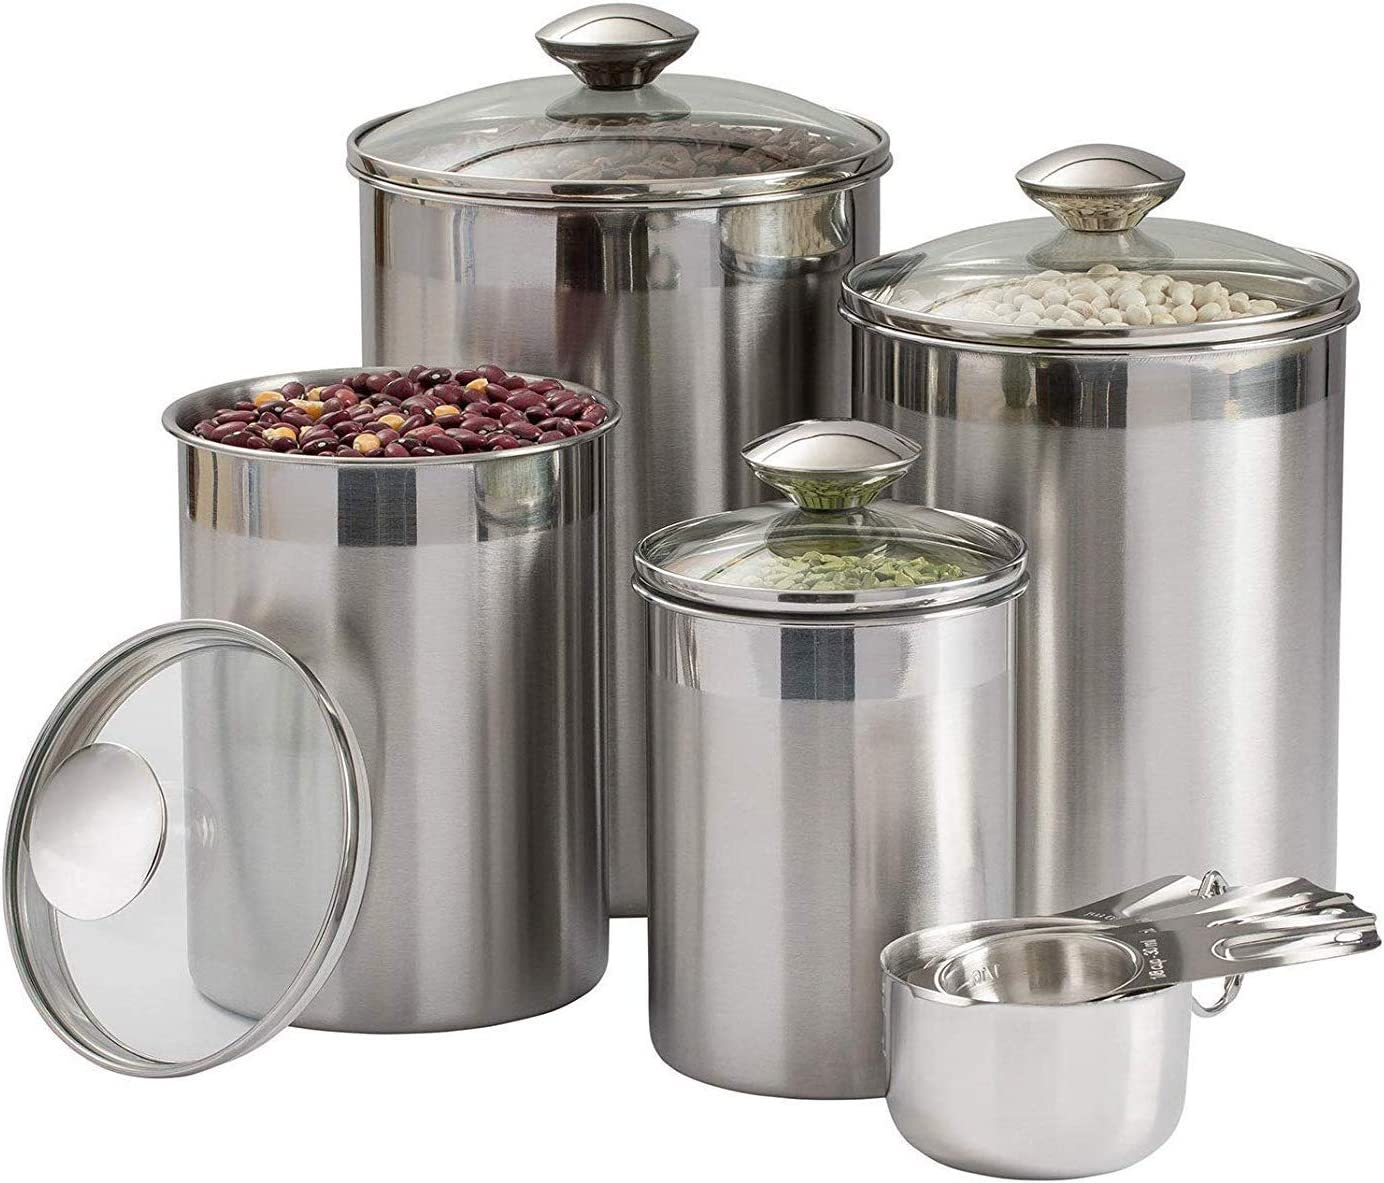 Beautiful Canisters Sets for the Kitchen Counter, 3-Piece Stainless Steel,  Medium Sized with Glass Lids and Measuring Cups - SilverOnyx Tea Coffee